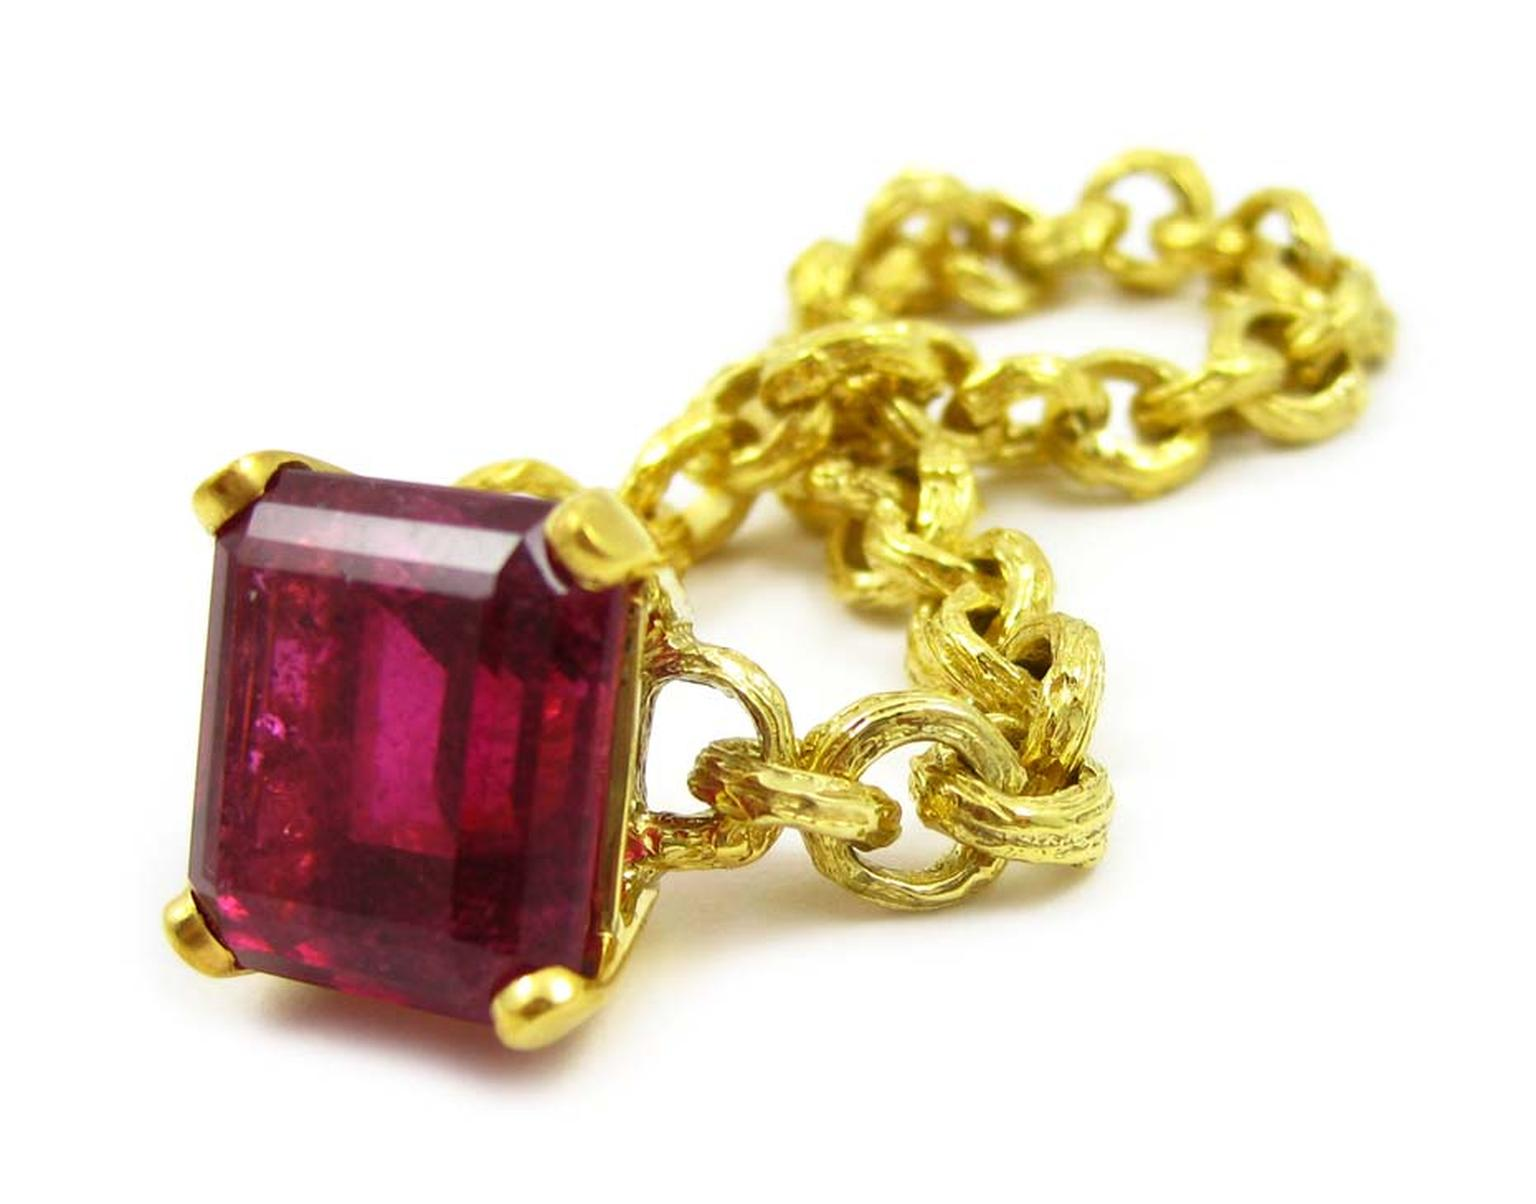 K. Brunini Twisted Chains of Love ring in yellow gold with a 13.54ct rubellite ($16,640).